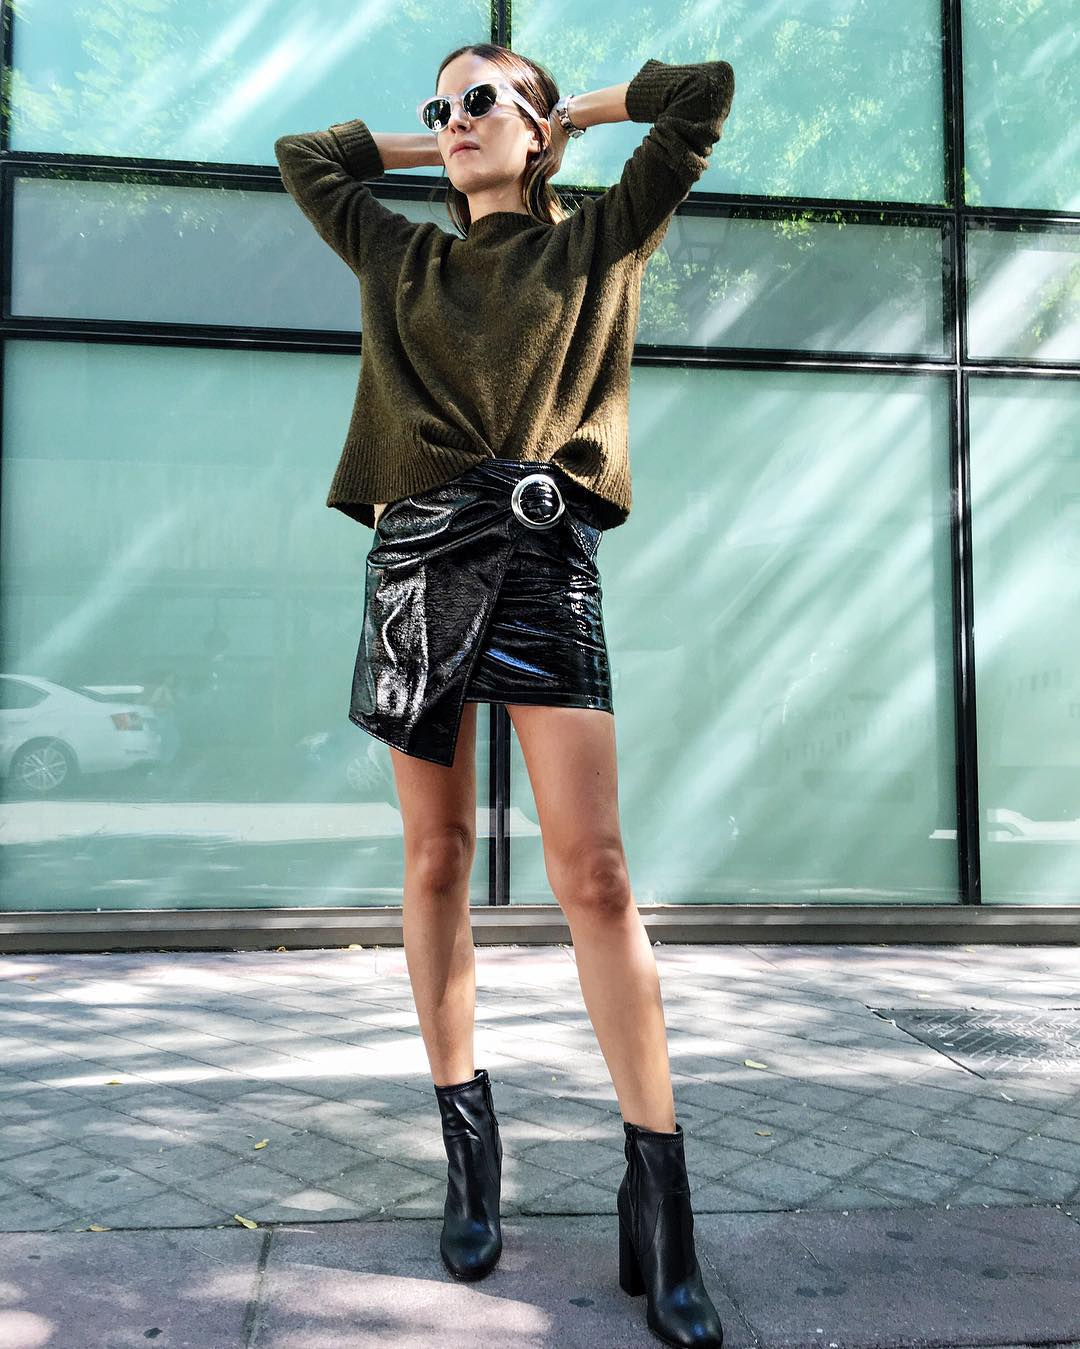 db513612c Patent Leather Skirt Trend Styling Tips Photos